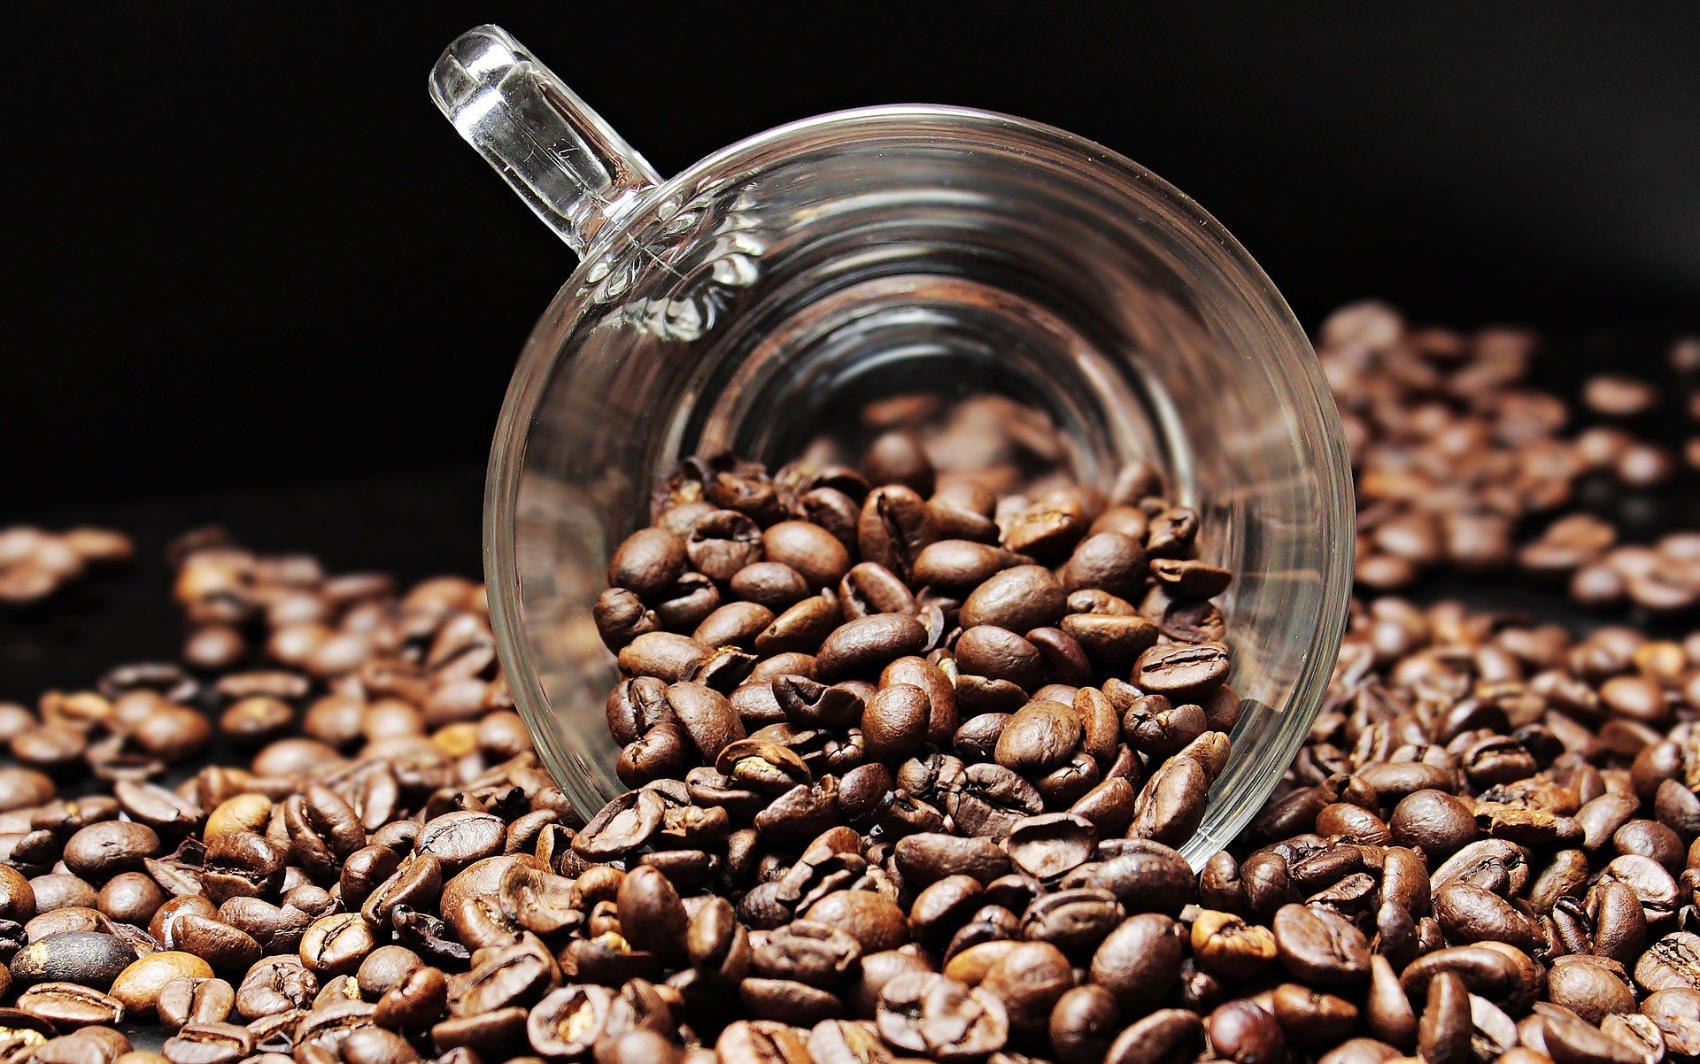 Coffee Beans - Image by S. Hermann & F. Richter